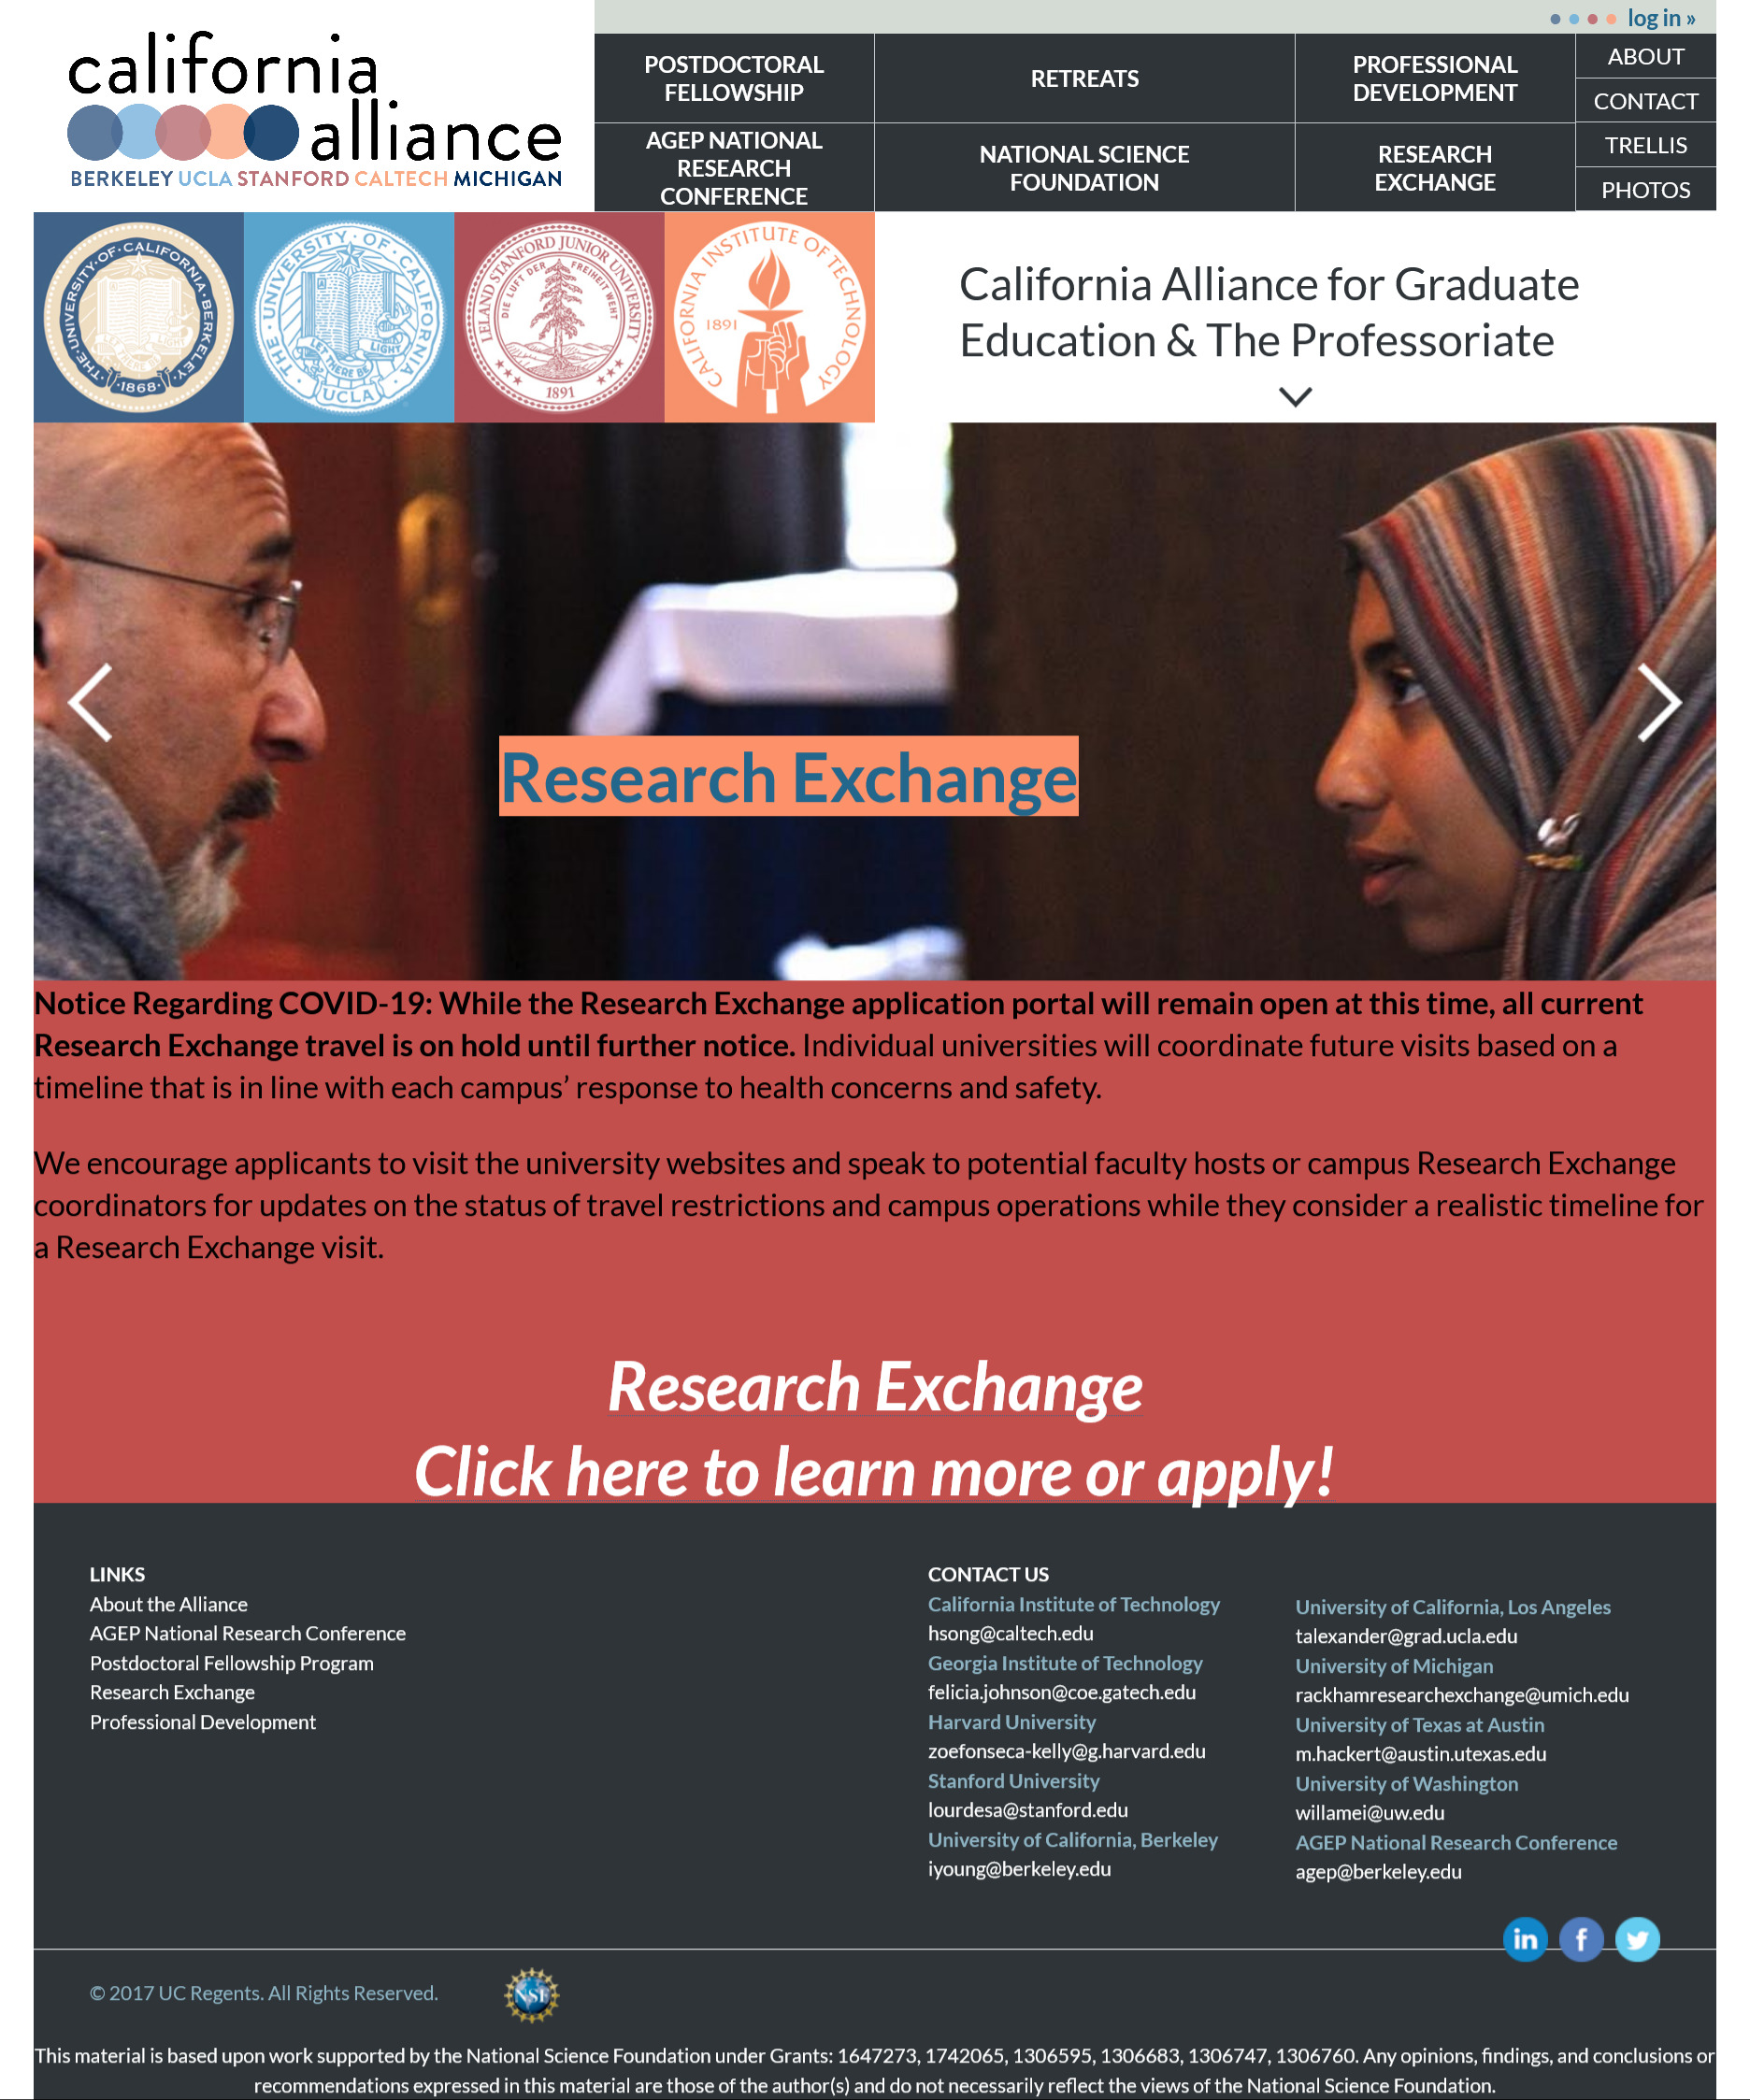 Image is a screen capture of California Alliance.org Homepage for archival purposes. Image includes copy from the homepage and time based announcements that are now outdated.